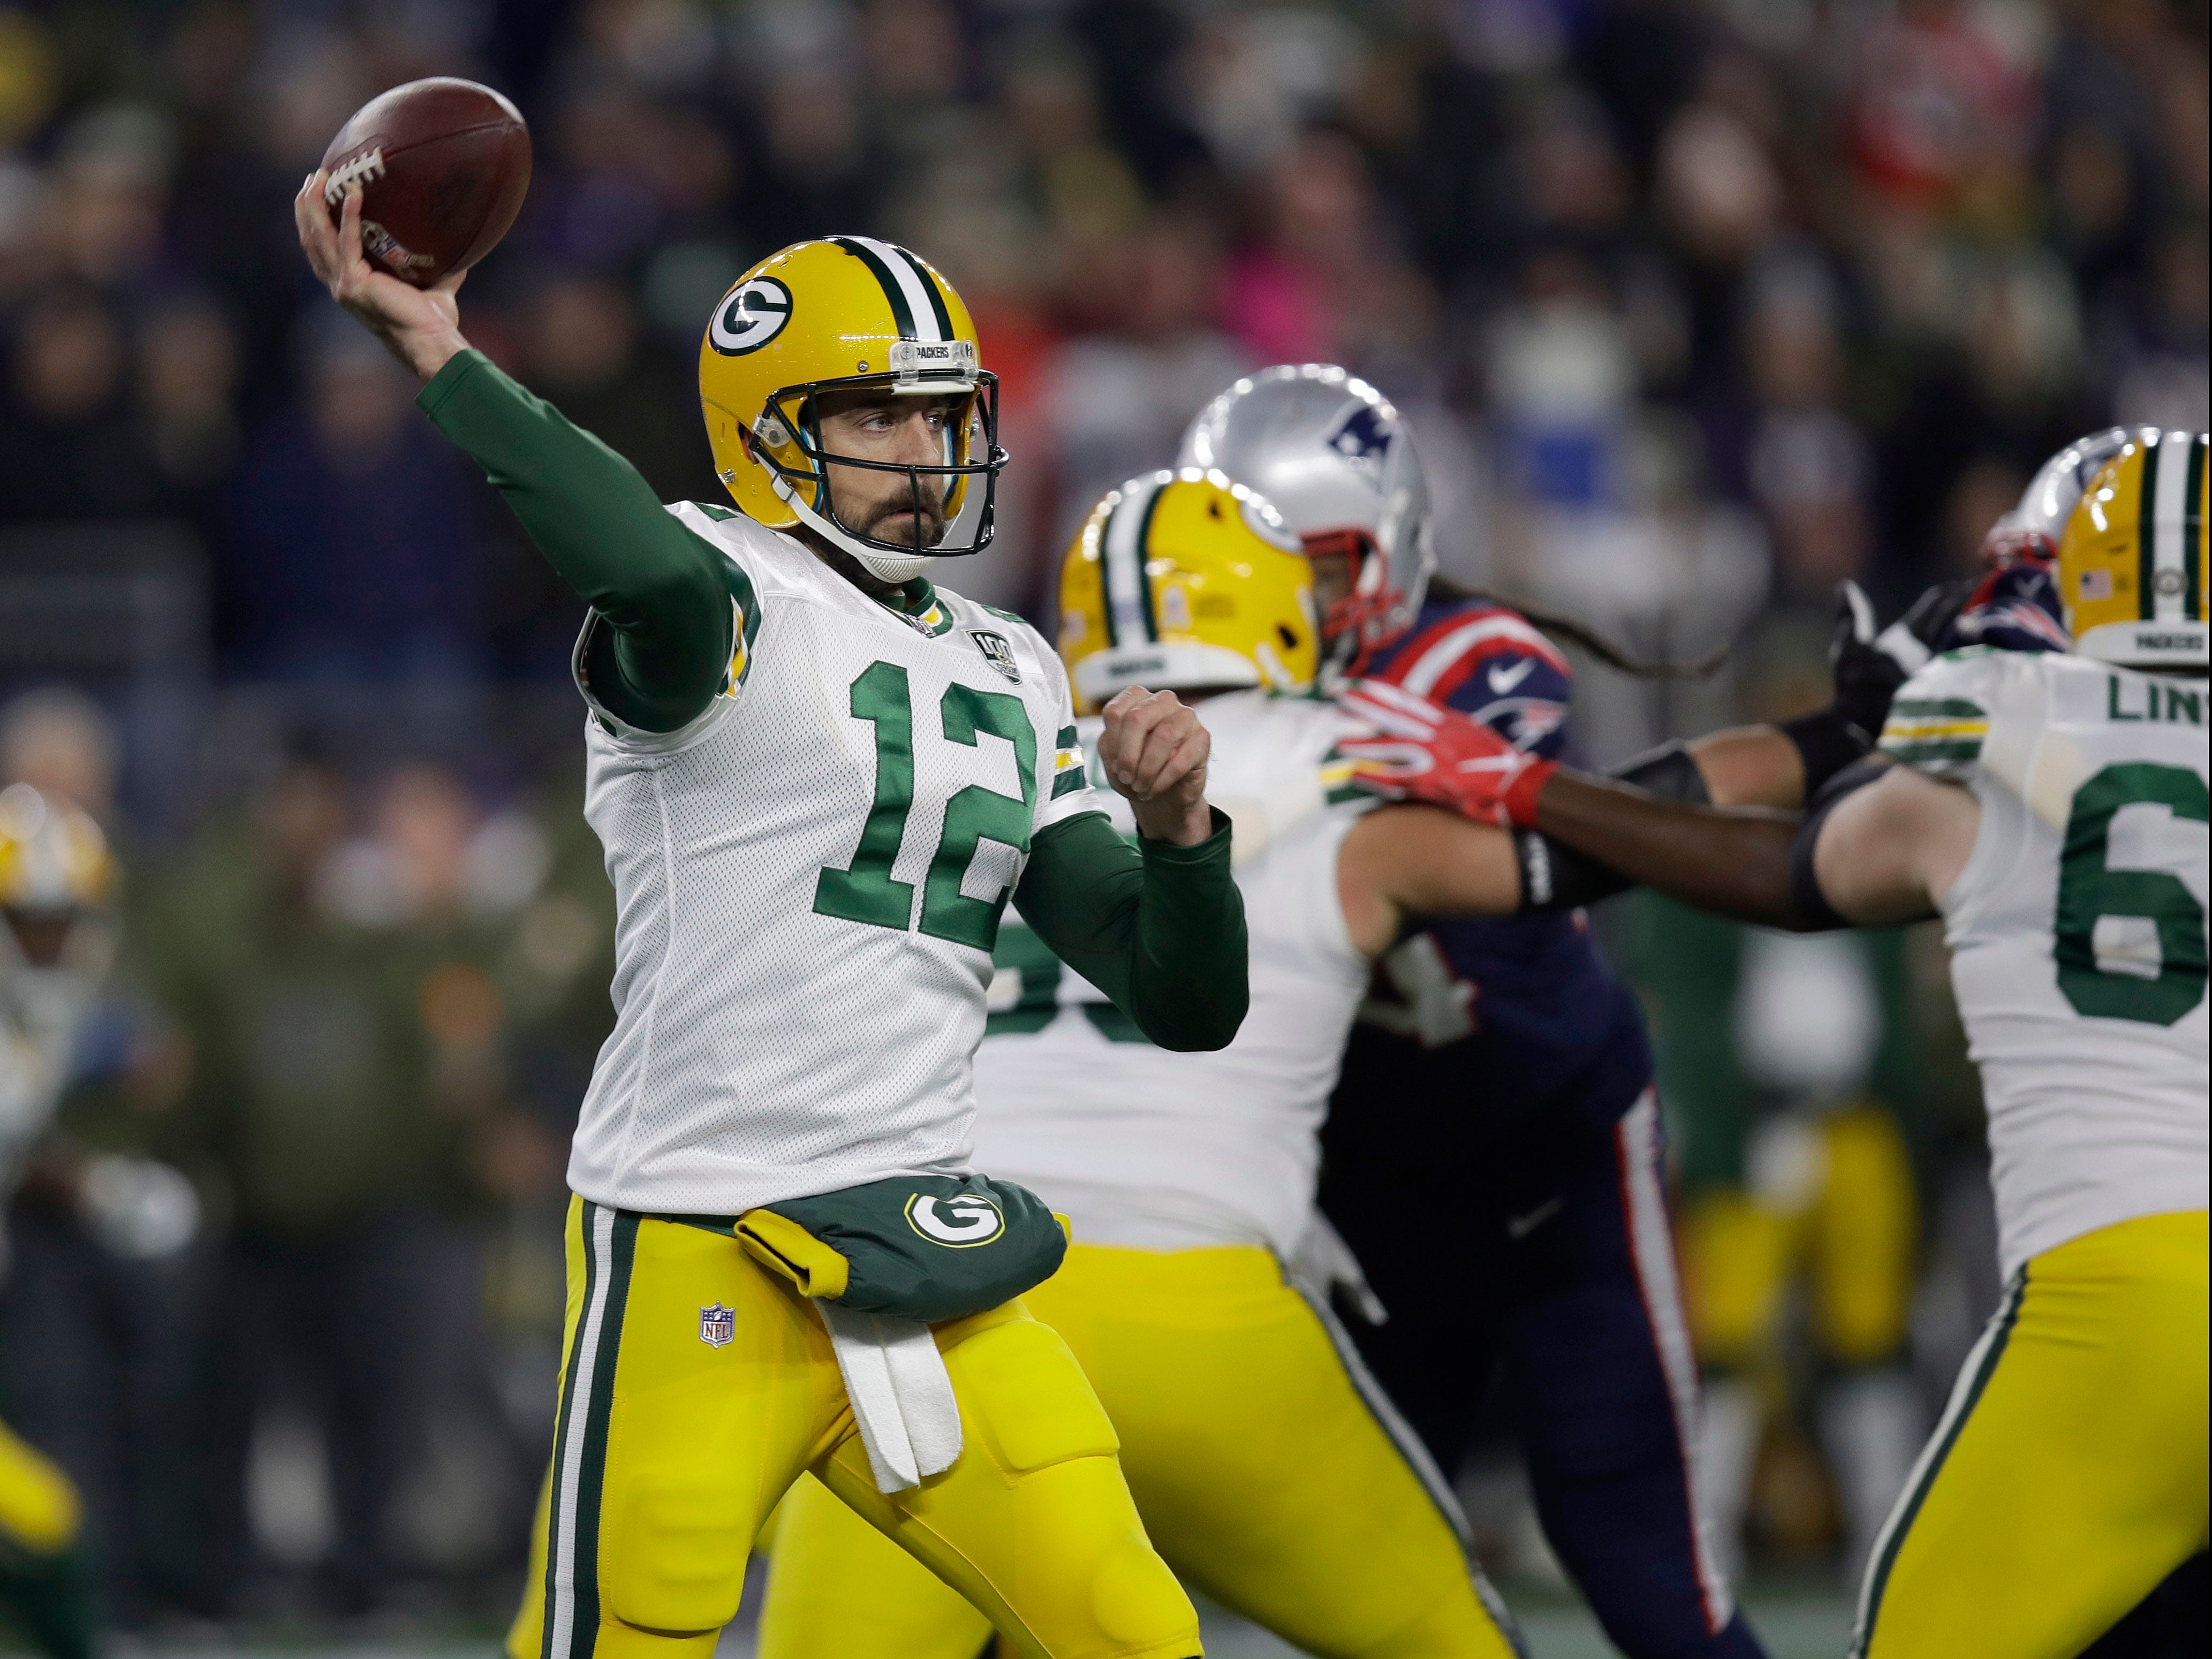 Green Bay Packers quarterback Aaron Rodgers passes against the New England Patriots during the first half of an NFL football game, Sunday, Nov. 4, 2018, in Foxborough, Mass. (AP Photo/Charles Krupa)